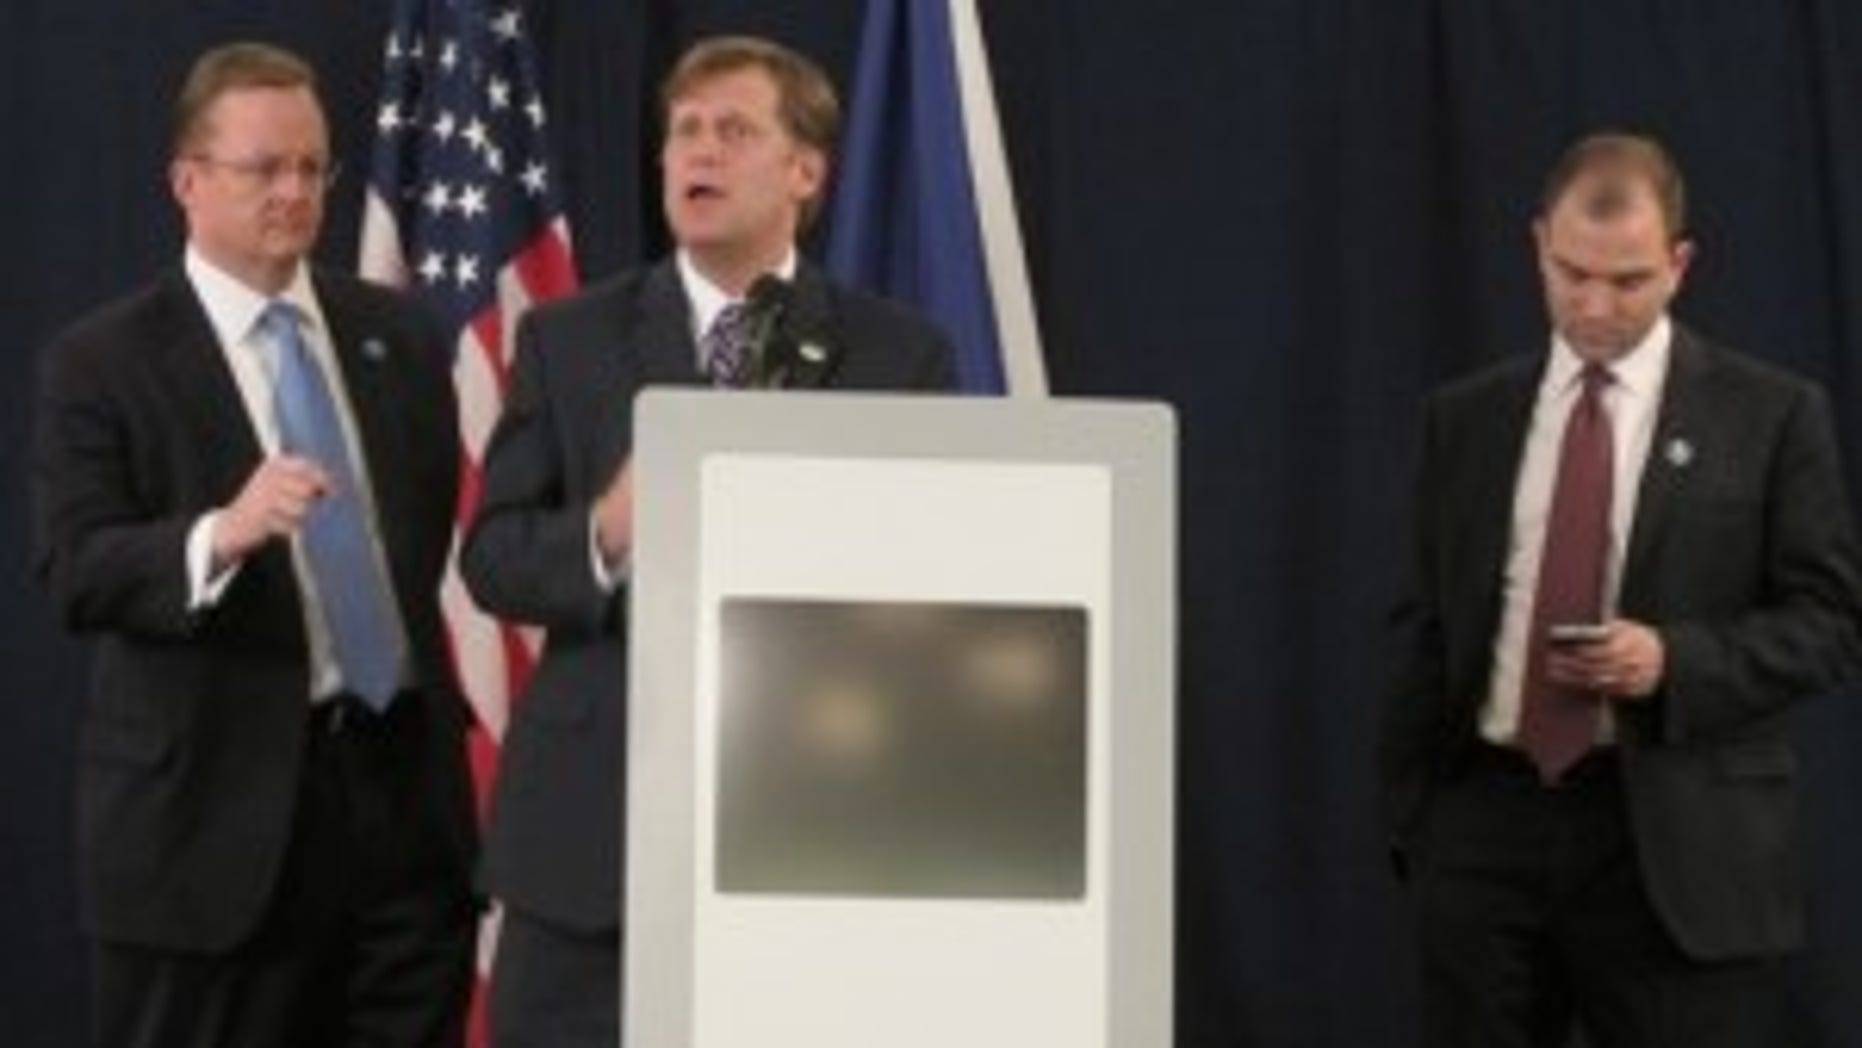 Michael McFaul briefs the Press on President Obama's meeting with President Medvedev